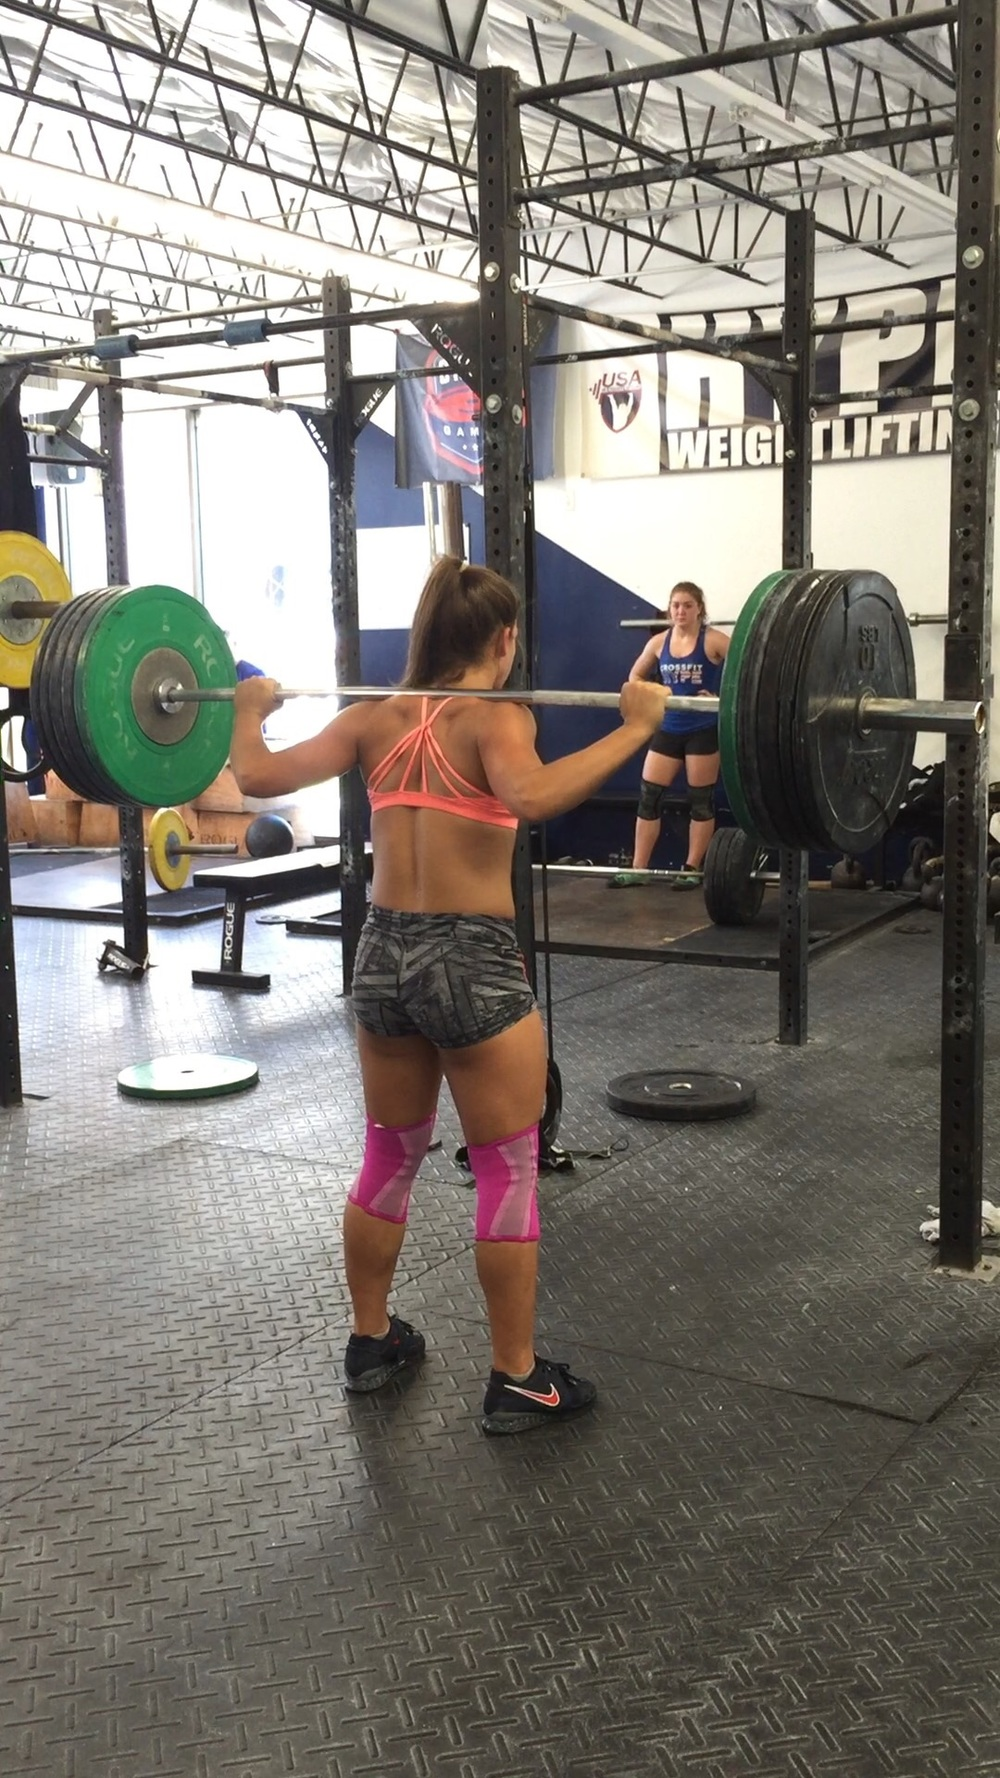 Kaela Stephano, 15 year old CrossFit games athlete, video posted at www.facebook.com/crossfithype